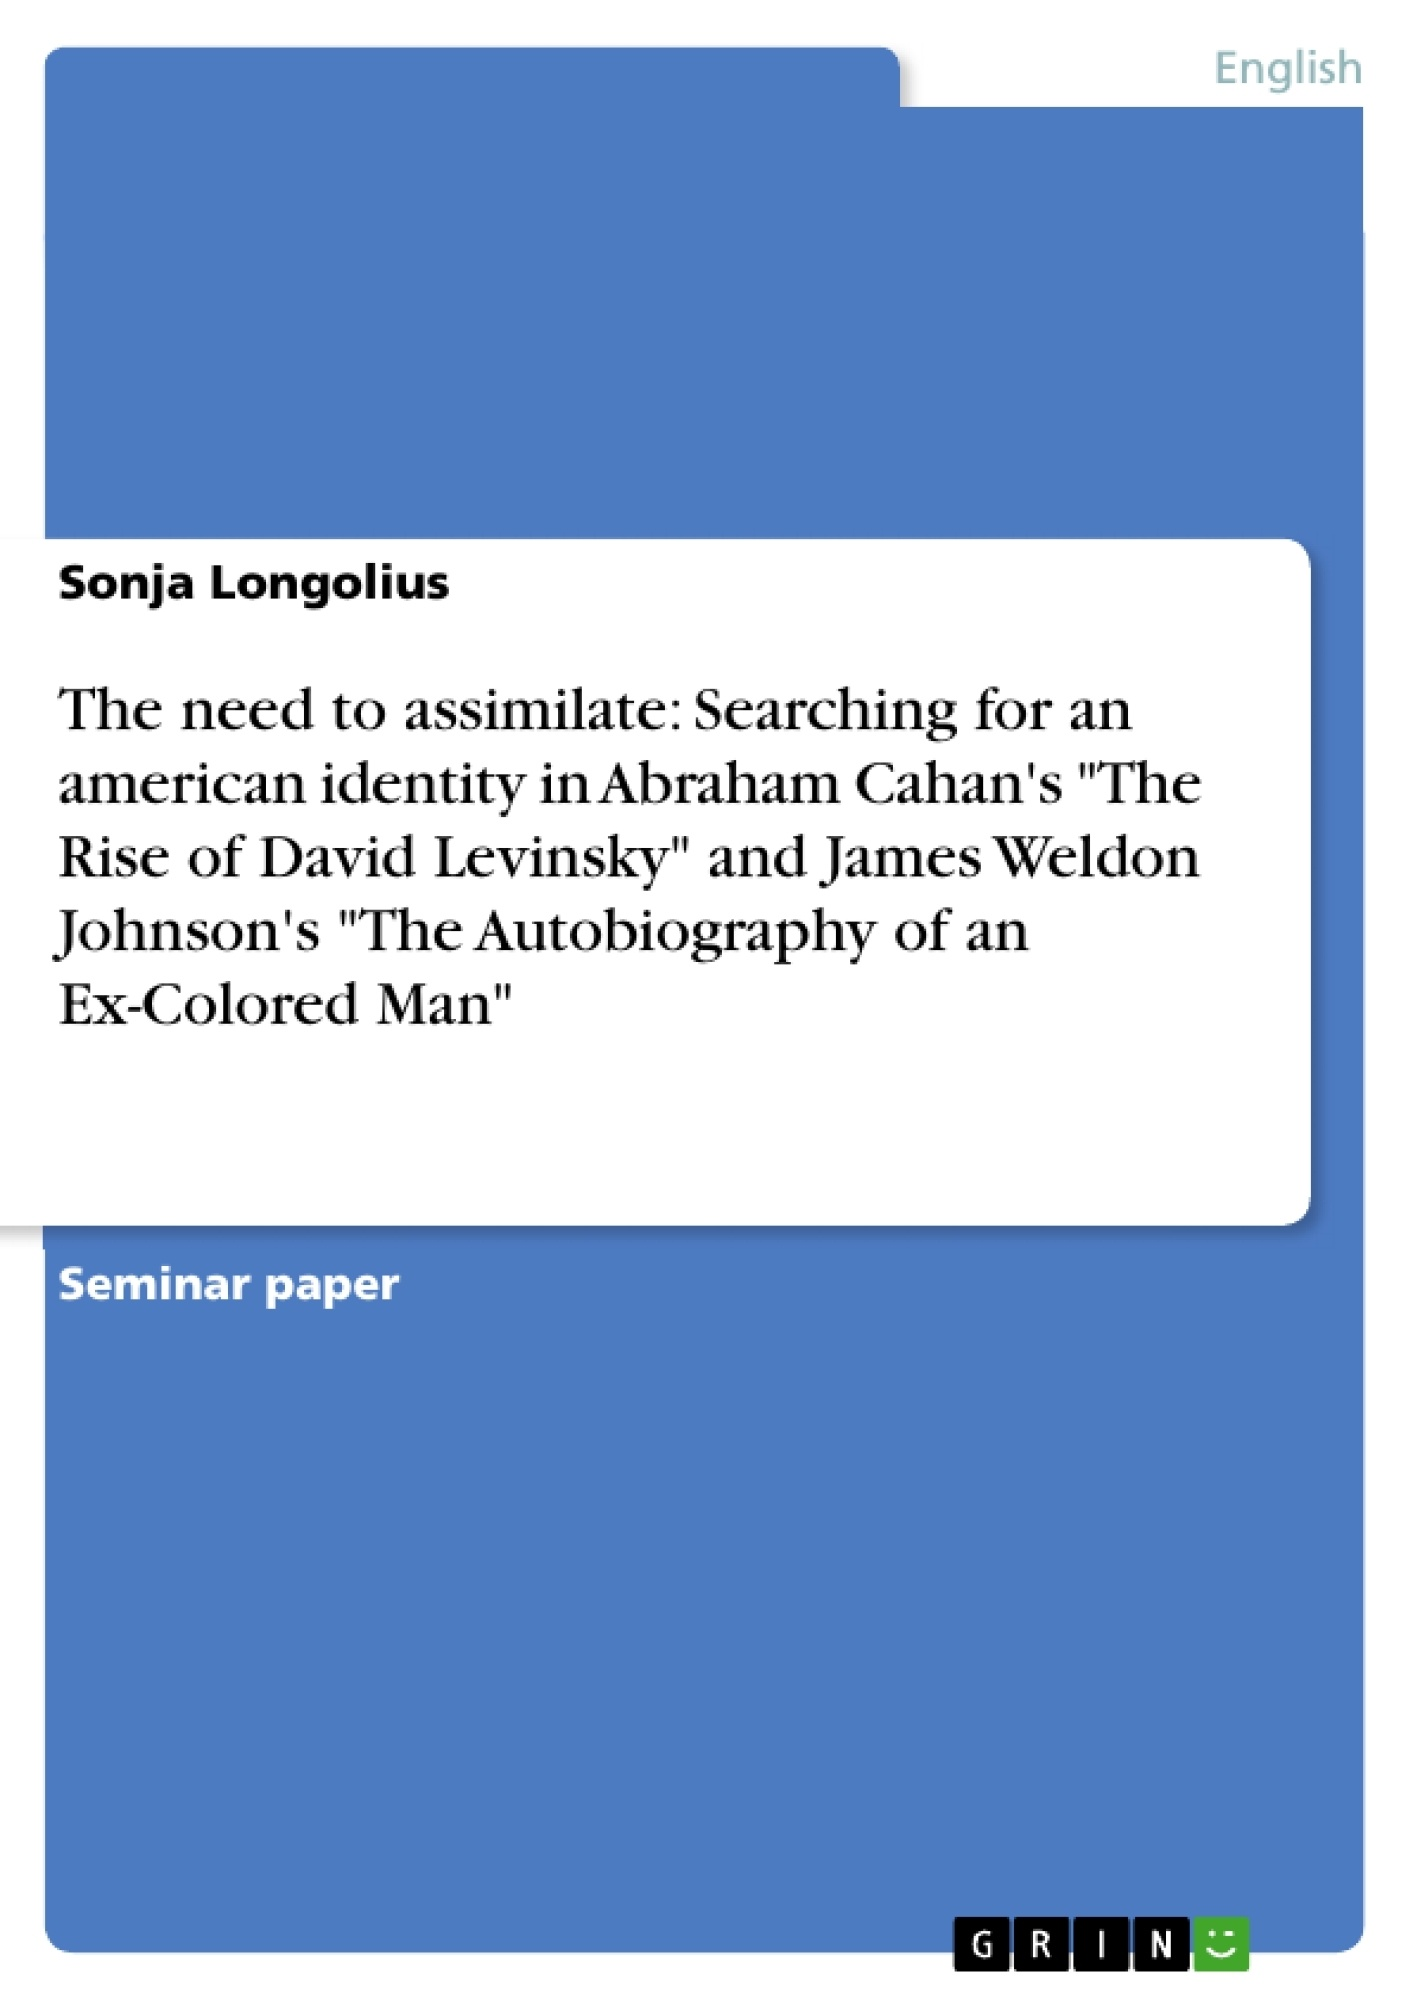 "Title: The need to assimilate: Searching for an american identity in Abraham Cahan's ""The Rise of David Levinsky"" and James Weldon Johnson's ""The Autobiography of an Ex-Colored Man"""